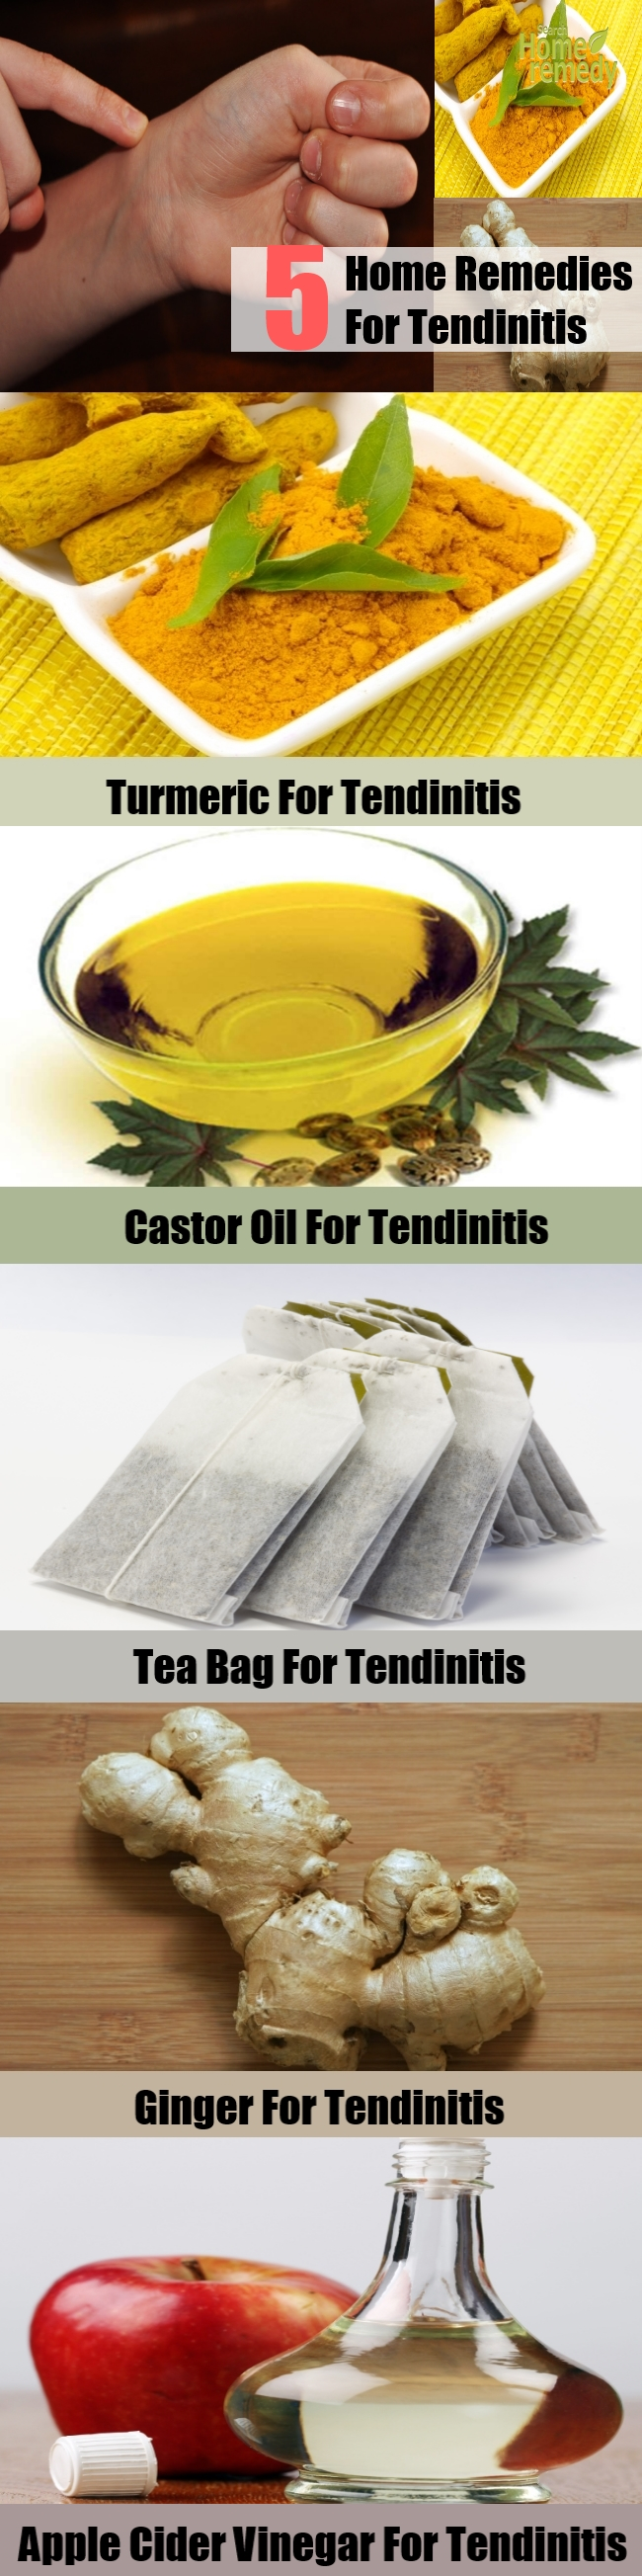 Top 5 Home Remedies For Tendinitis